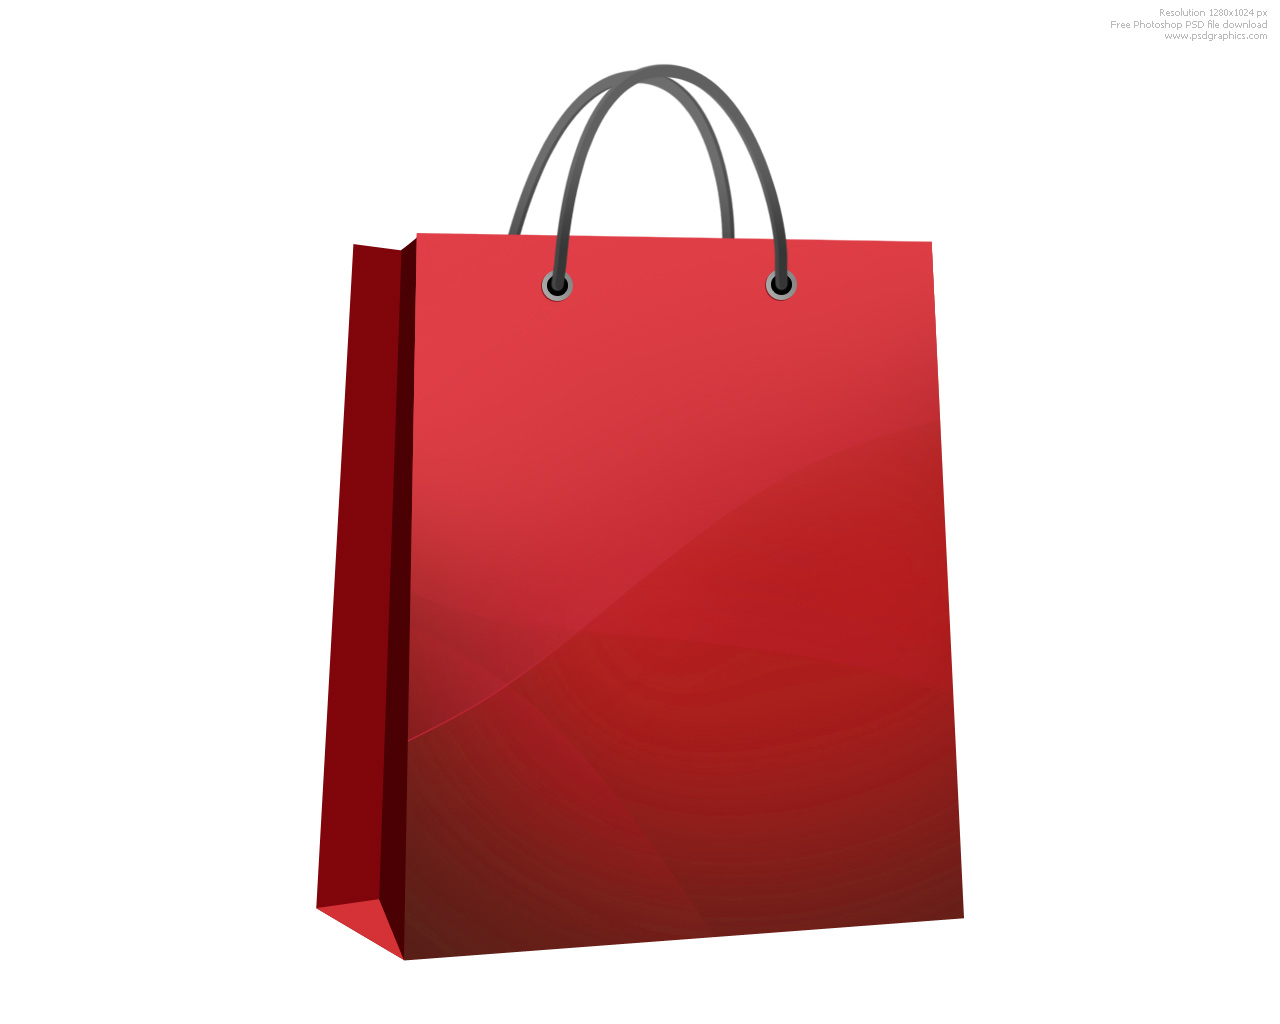 shopping bag clipart clipart panda free clipart images rh clipartpanda com shopping bag clip art free shopping bag clipart vector